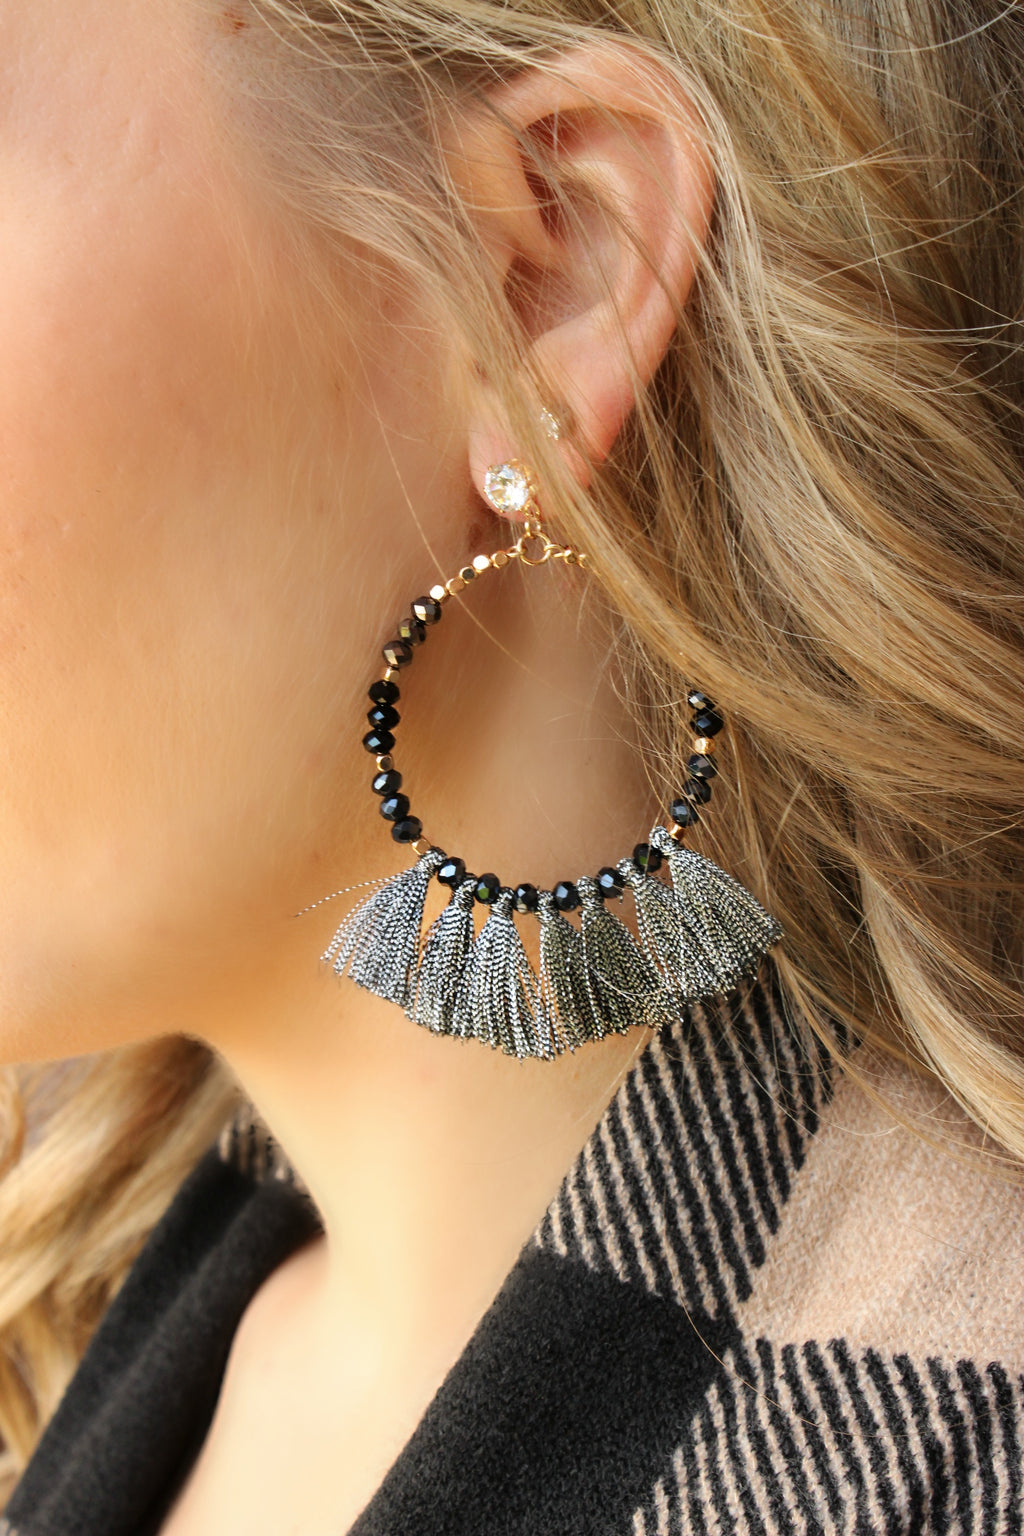 Going Somewhere New Earrings in Black - Leah B. Boutique